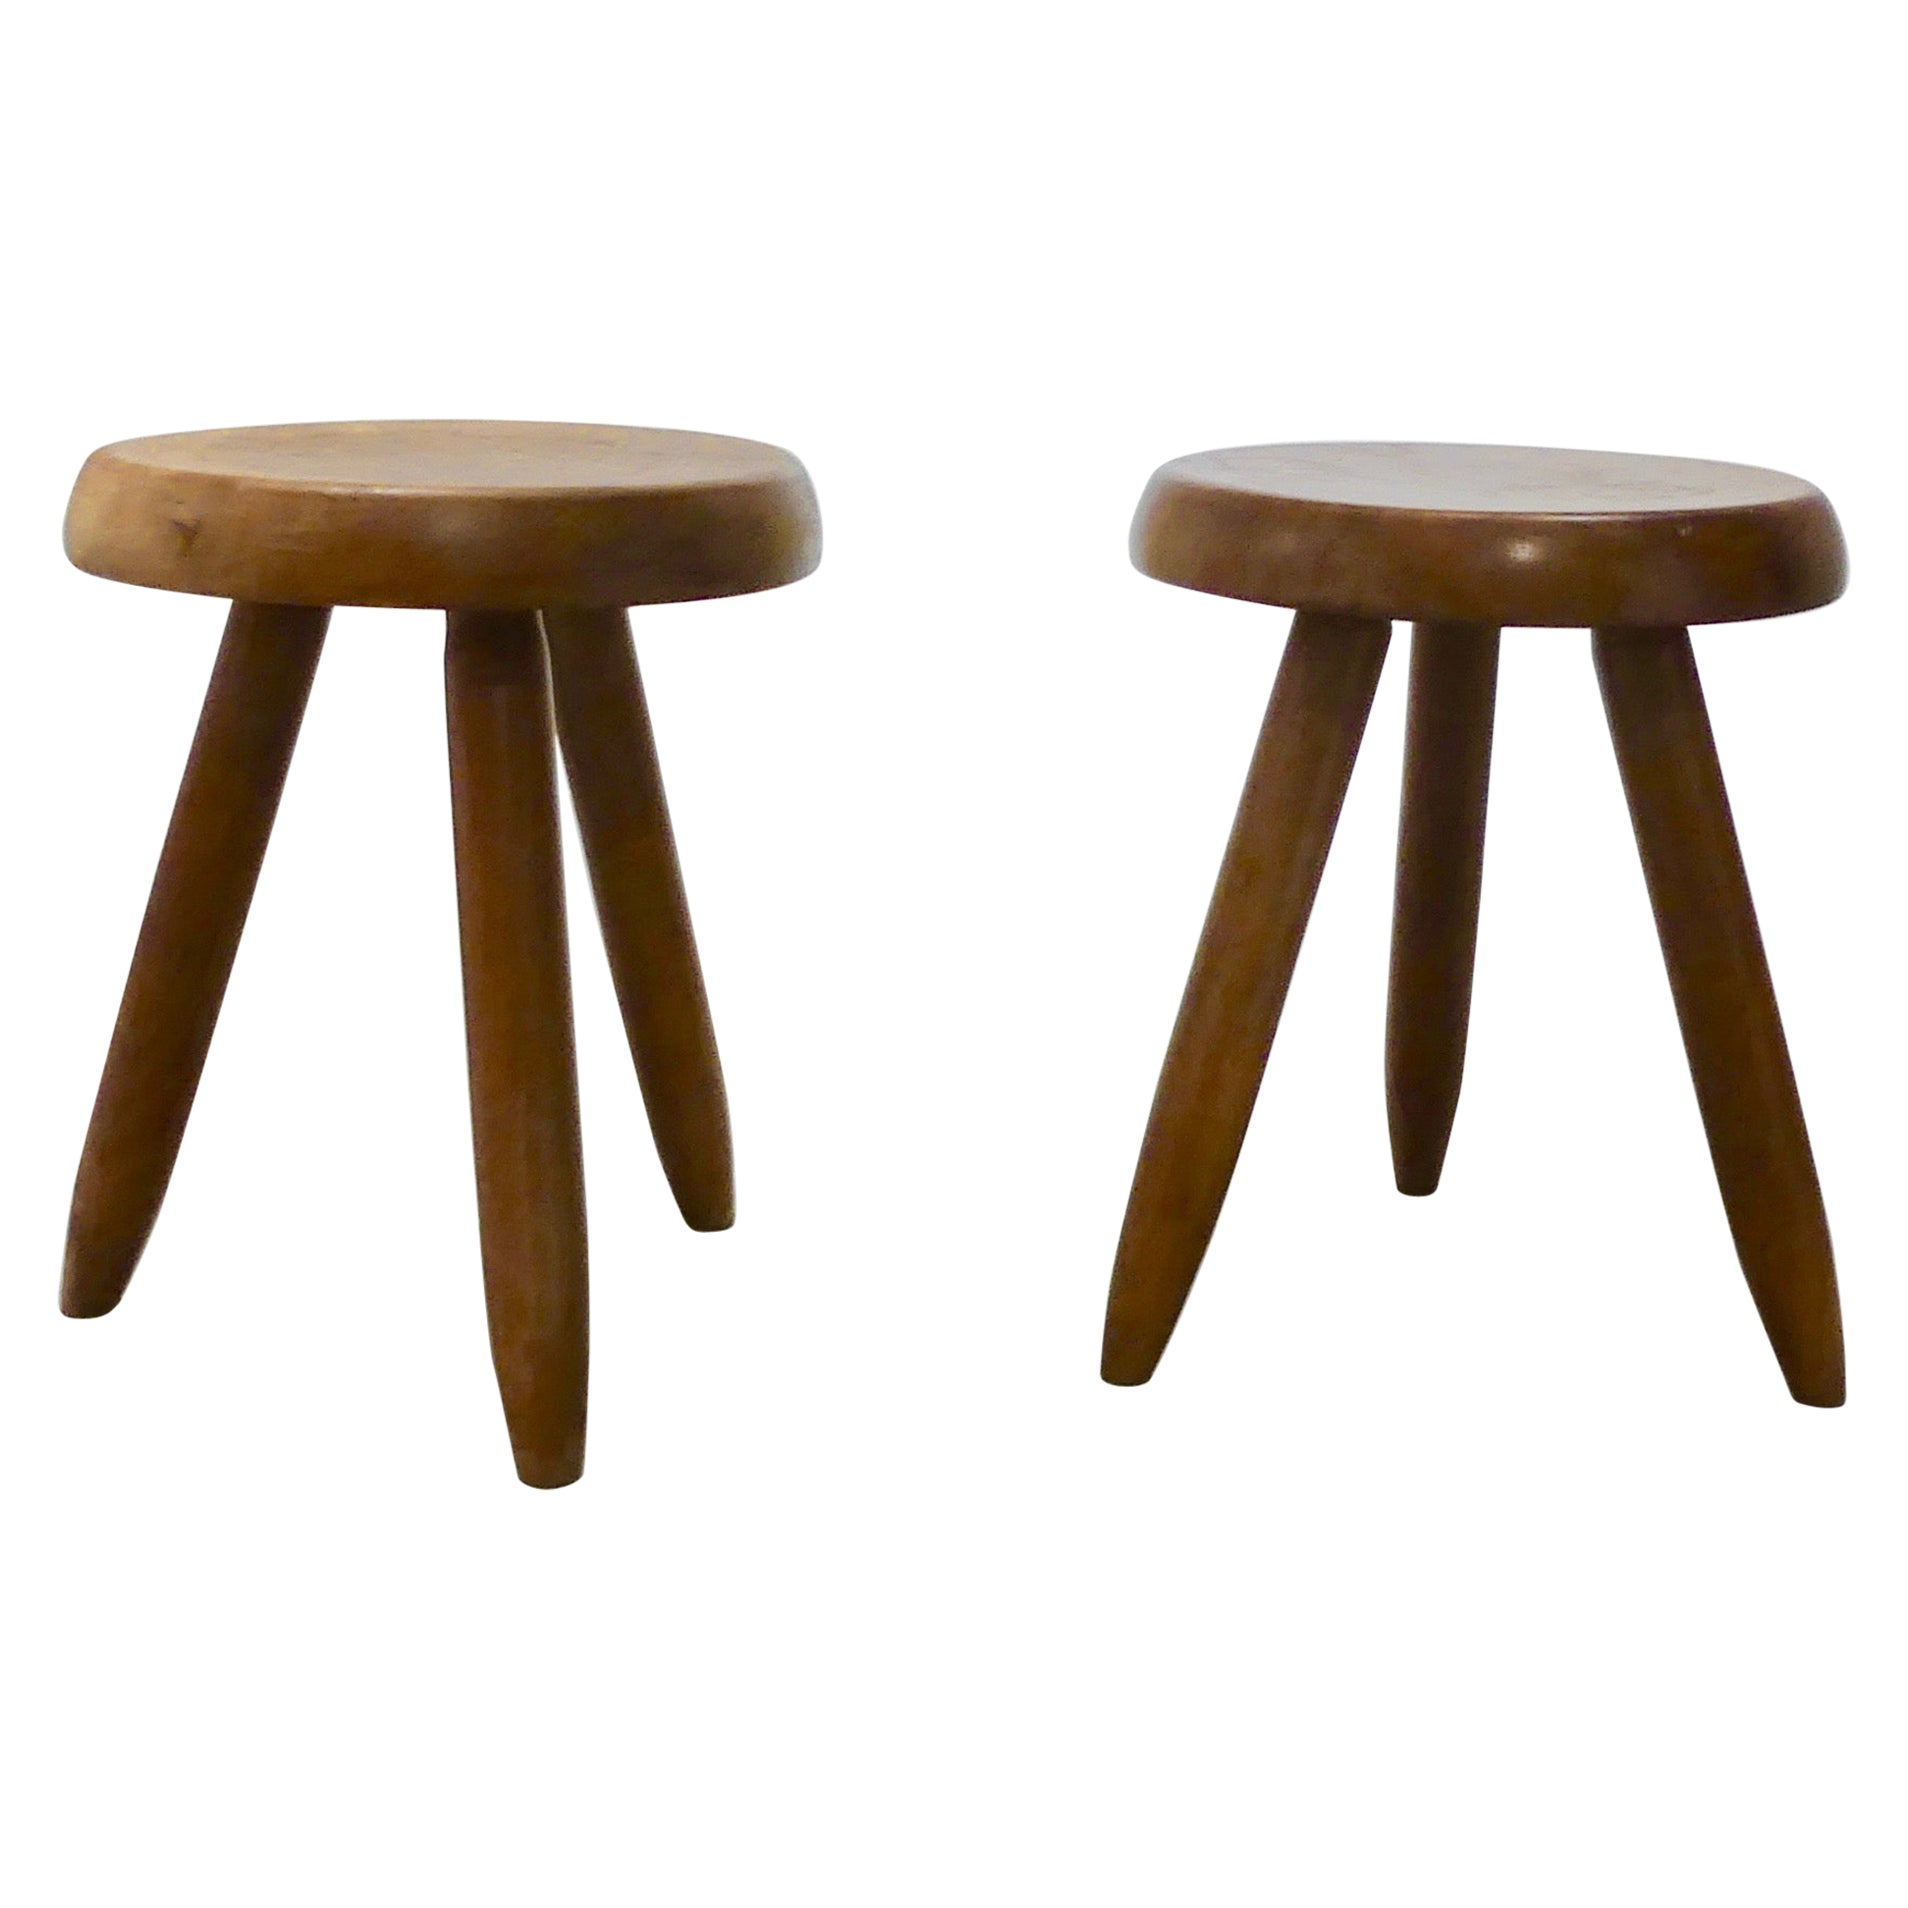 Charlotte Perriand, Stool 'Pair'